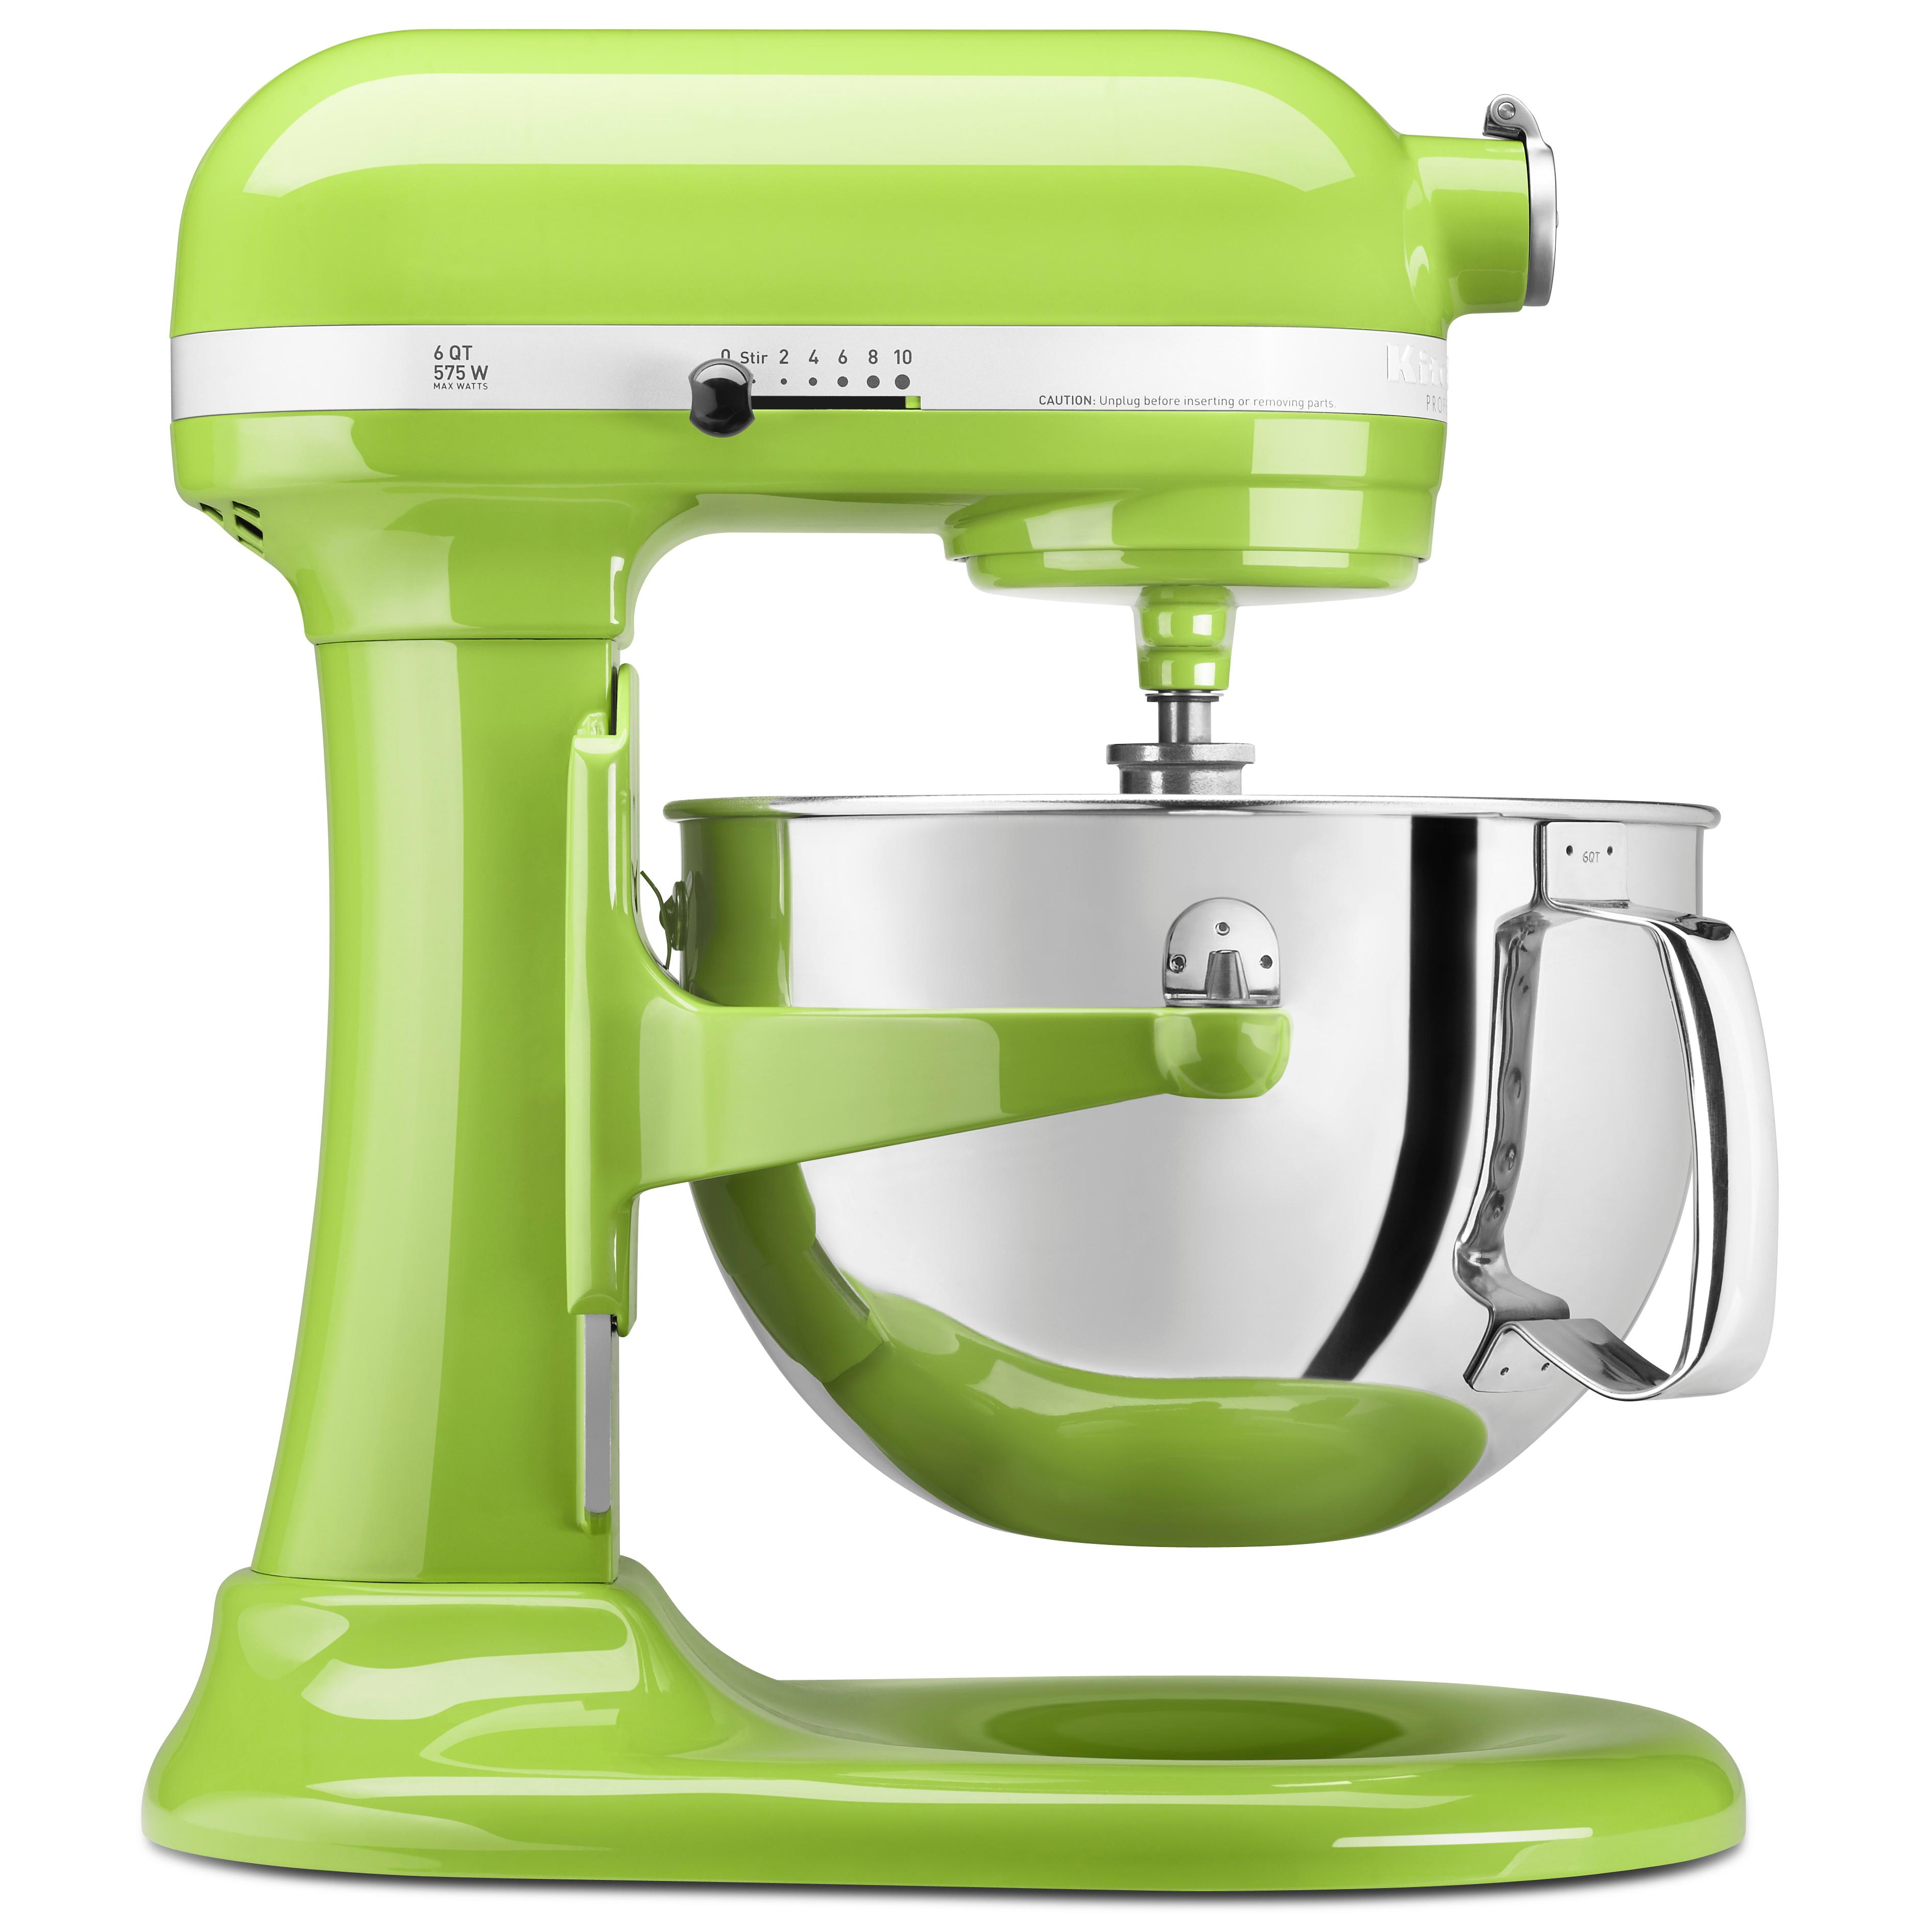 Kitchenaid professional pro 600 bowl lift 6 qt stand mixer for Kitchenaid f series accessories